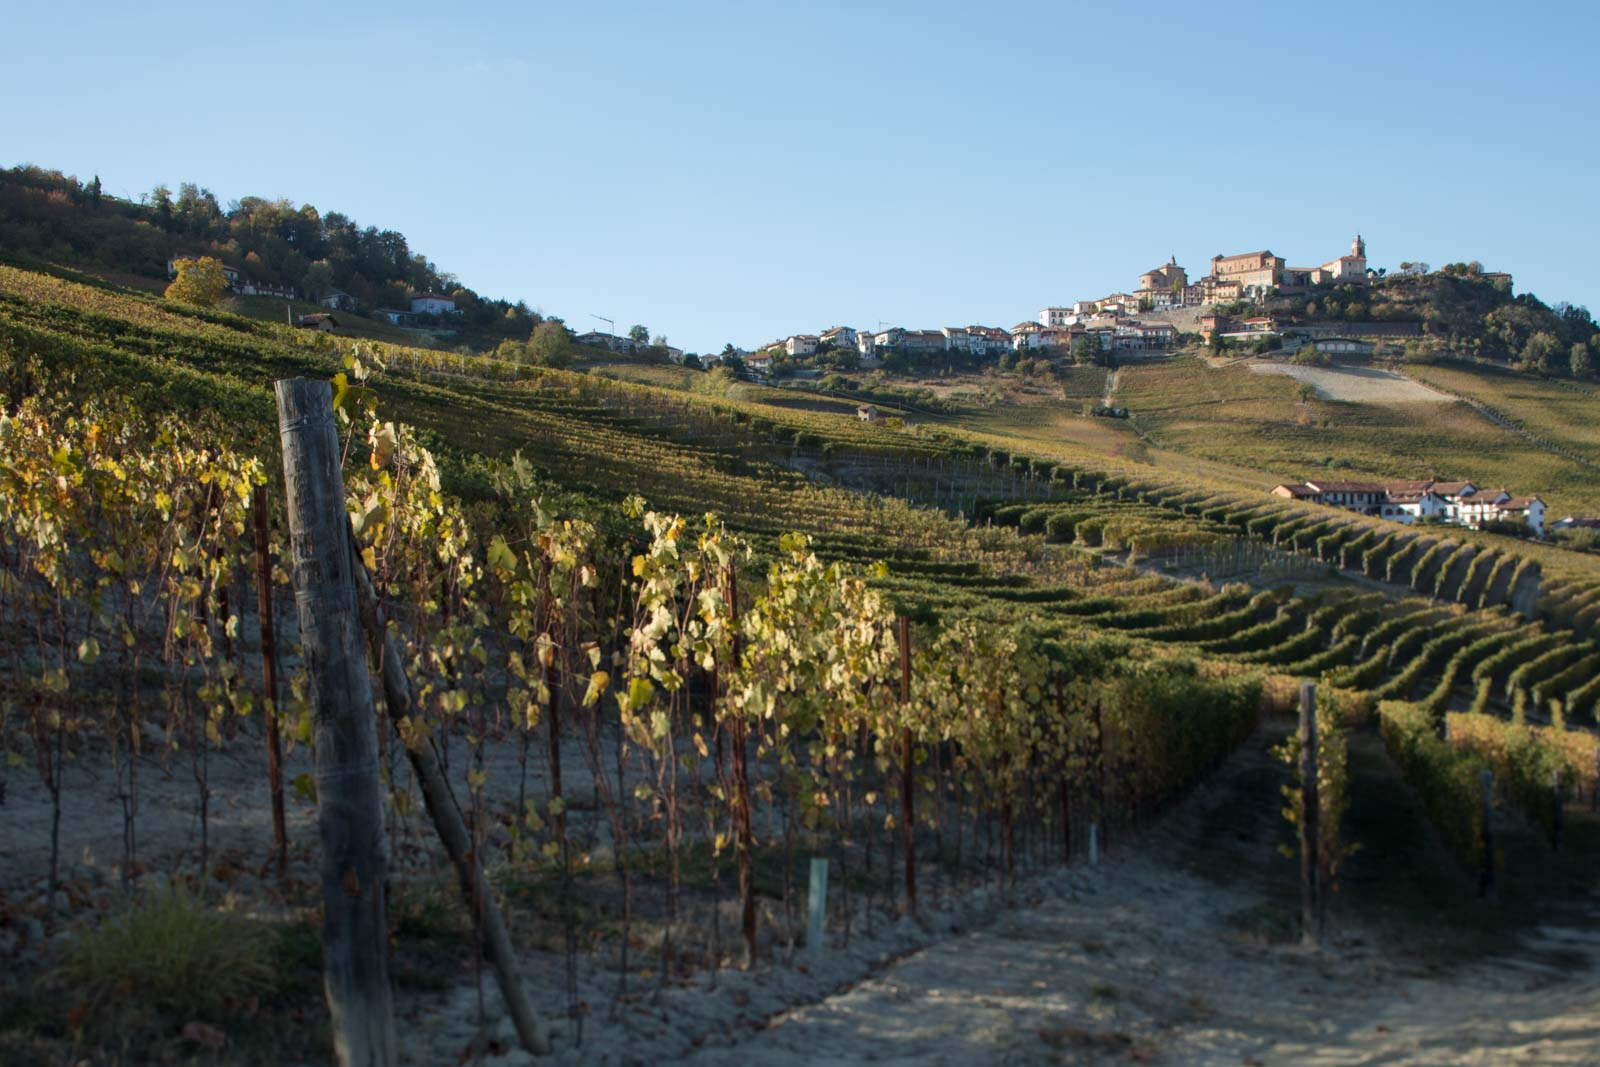 The Boiolo cru of Barolo with the beautiful town of La Morra crowning the hill. ©Kevin Day/Opening a Bottle